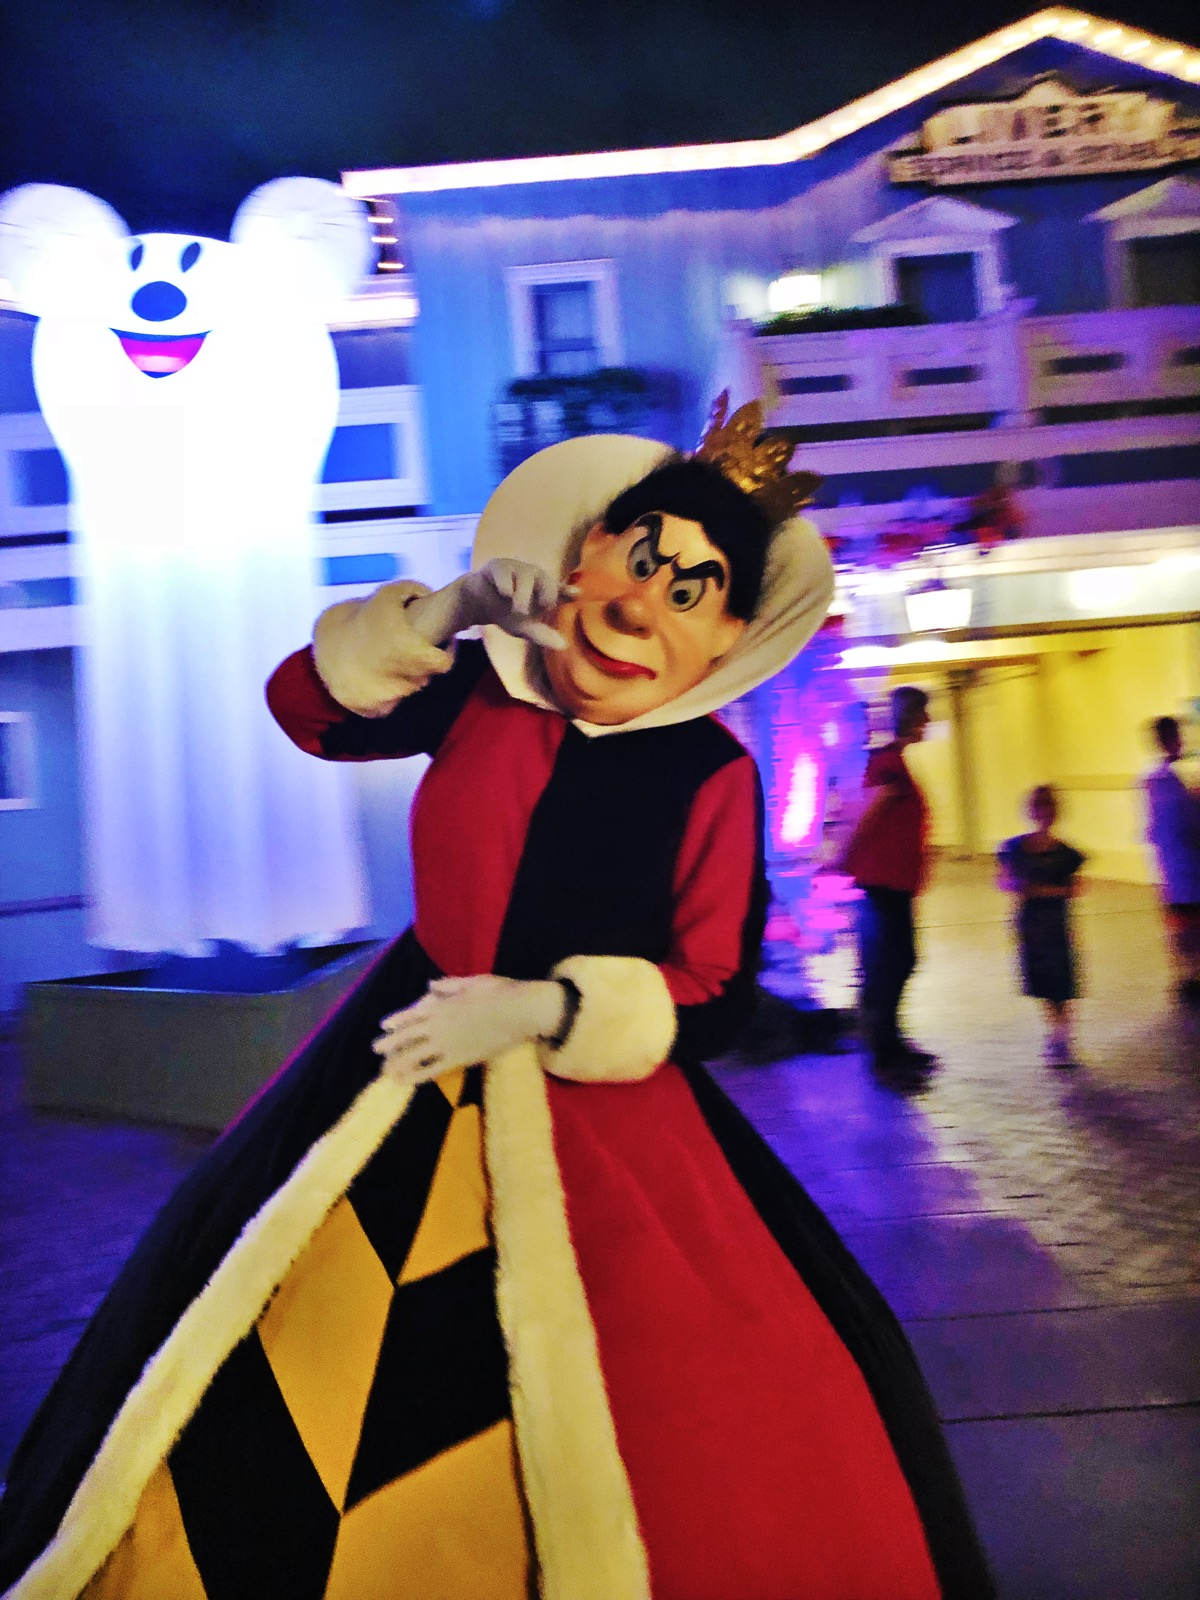 Five things to skip at Mickey's Halloween Party. #MickeysHalloweenParty2019 #MickeysHalloweenPartyDisneyland #Disneyland #Halloween #MickeysHalloweenParty #Disney #Travel